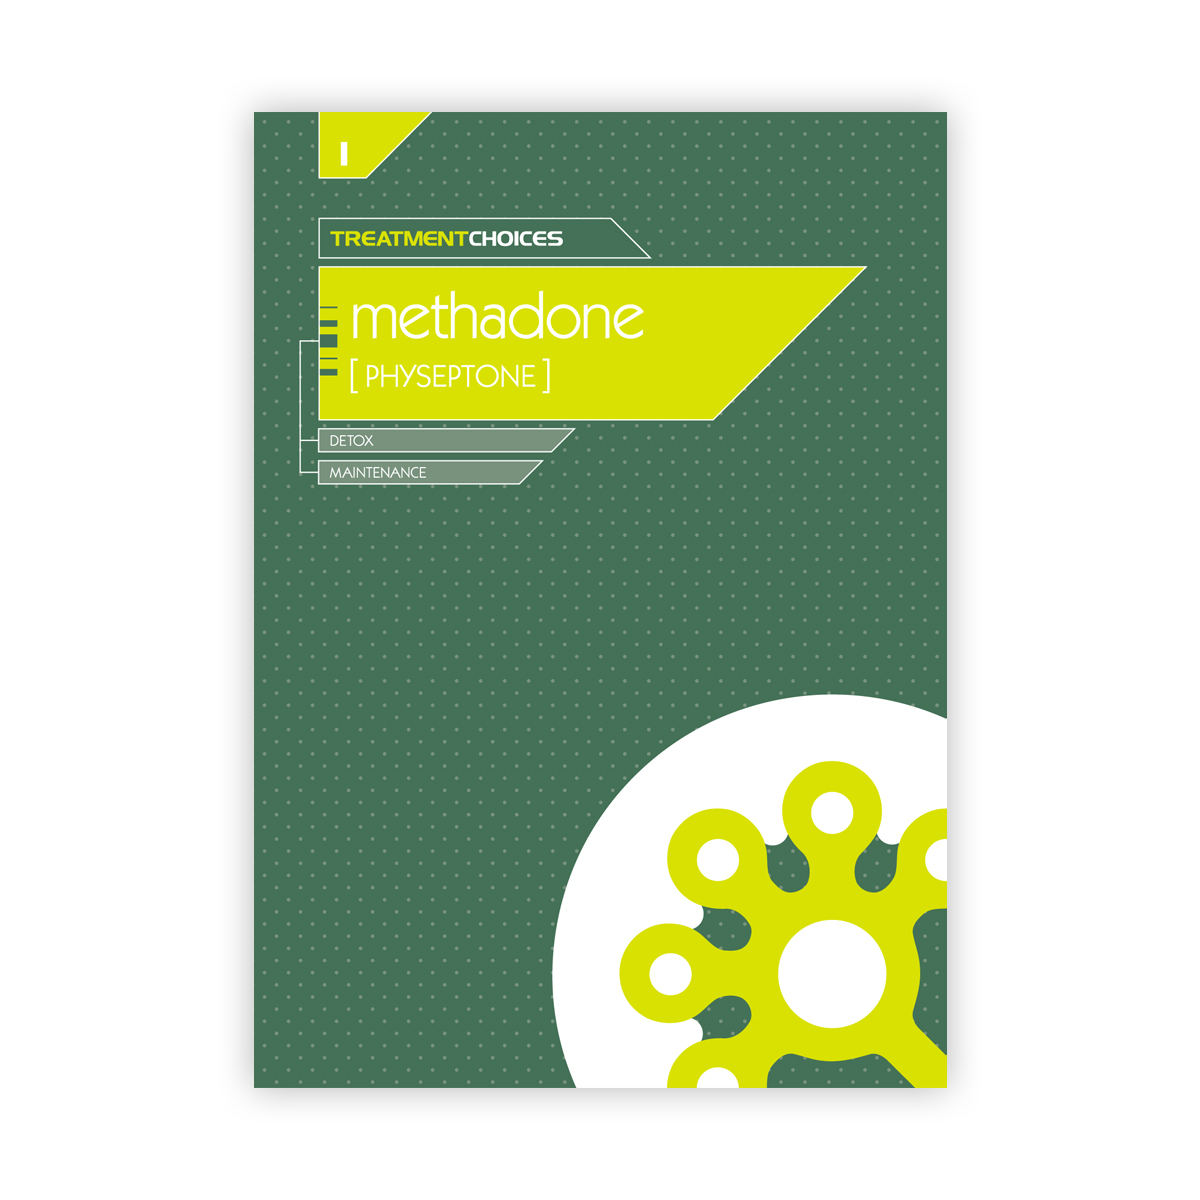 Treatment Choices 1: Methadone